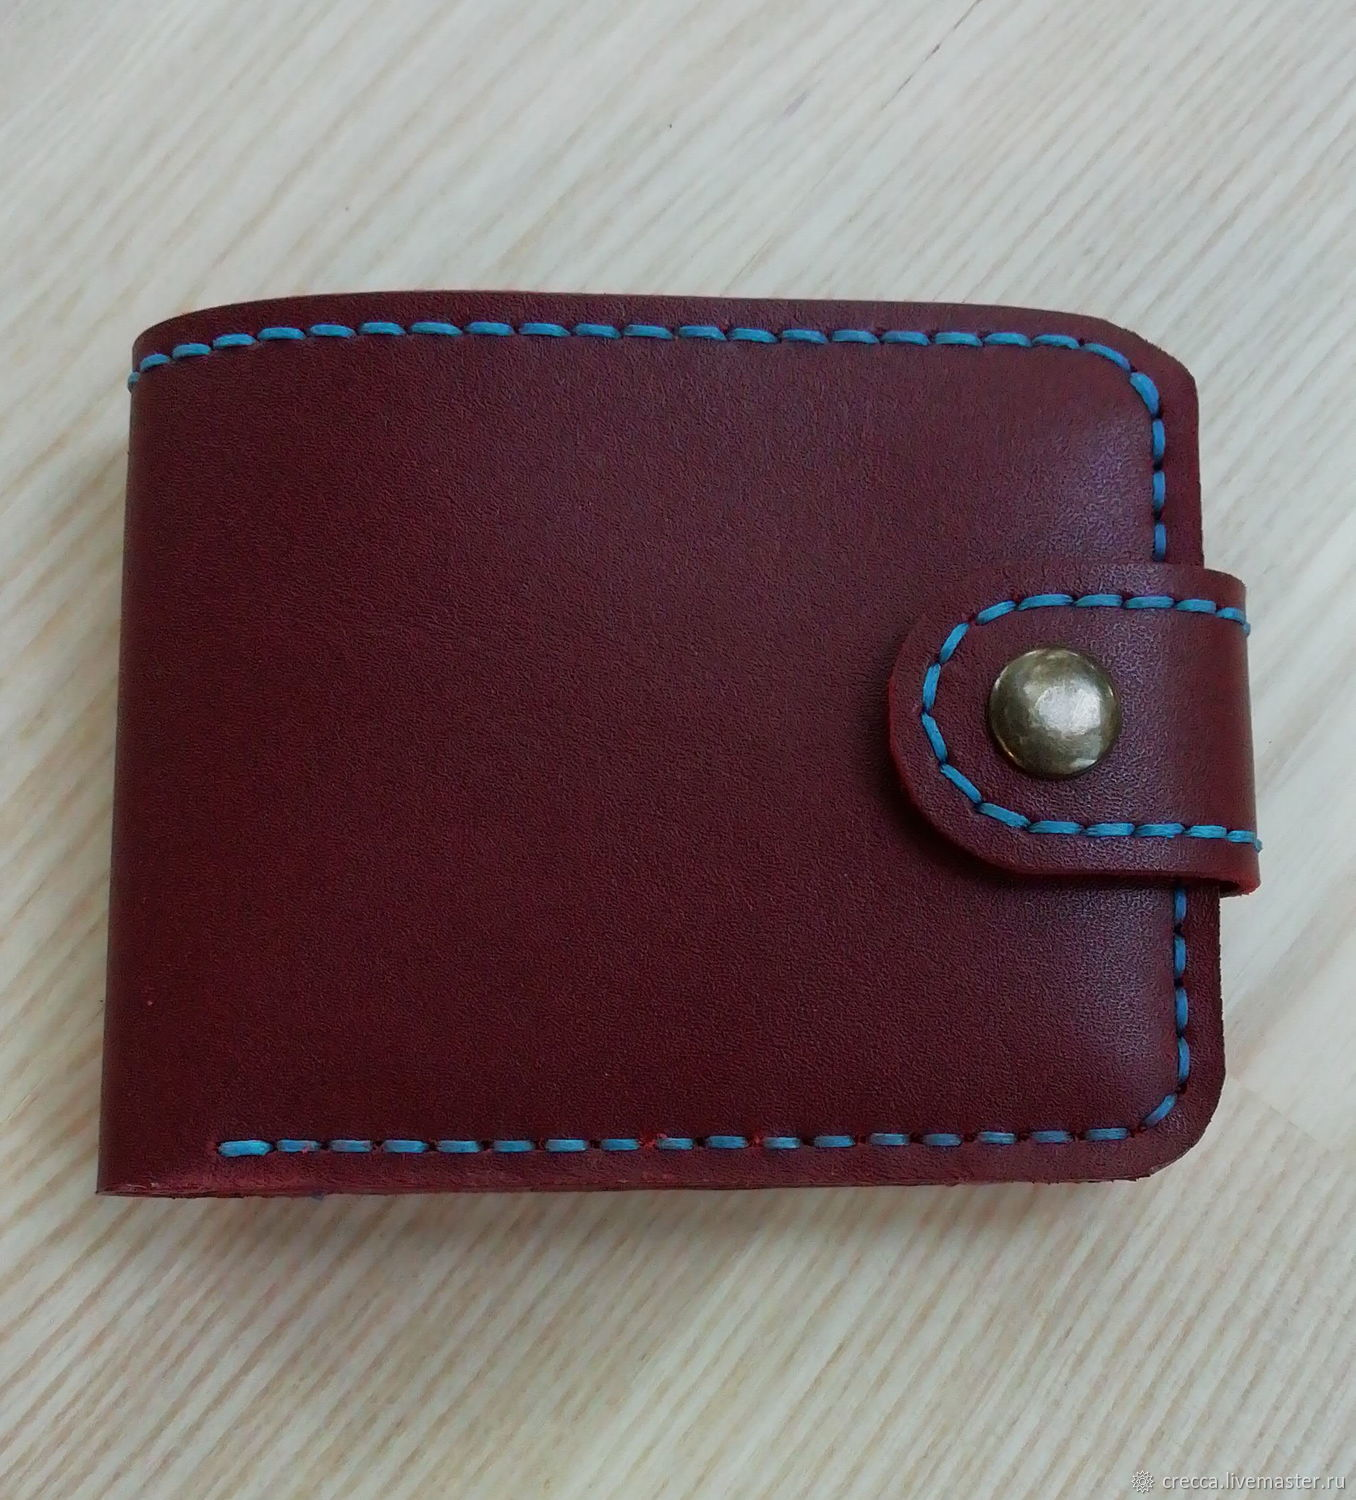 Wallet leather, Wallets, Moscow,  Фото №1